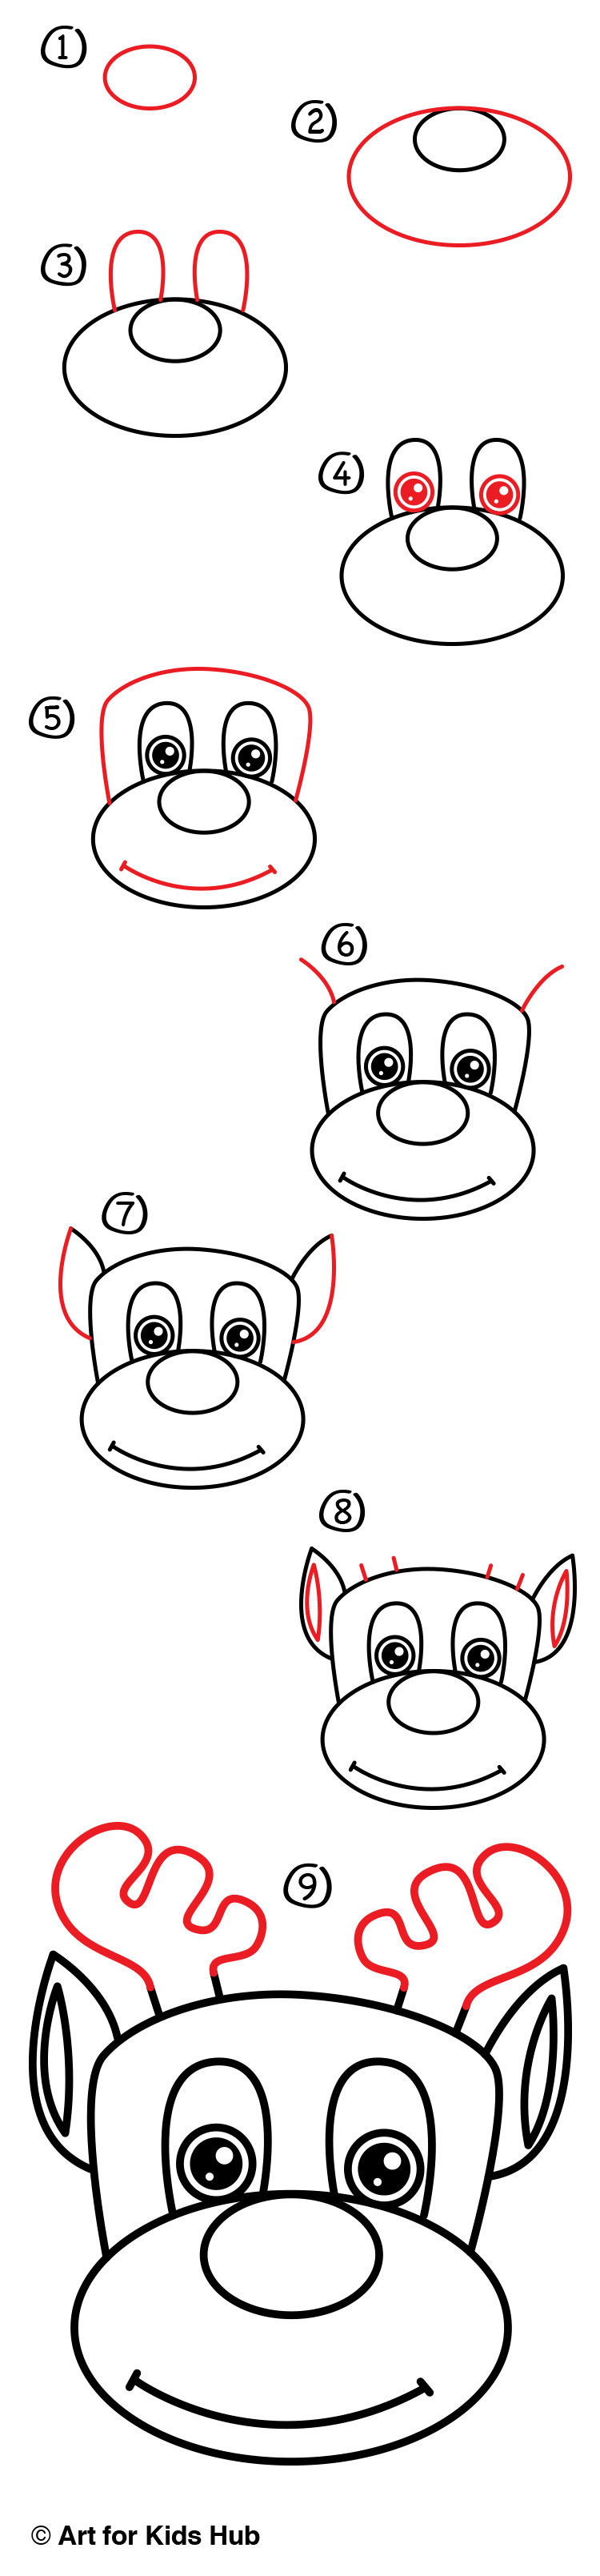 how to draw rudolph art for kids hub